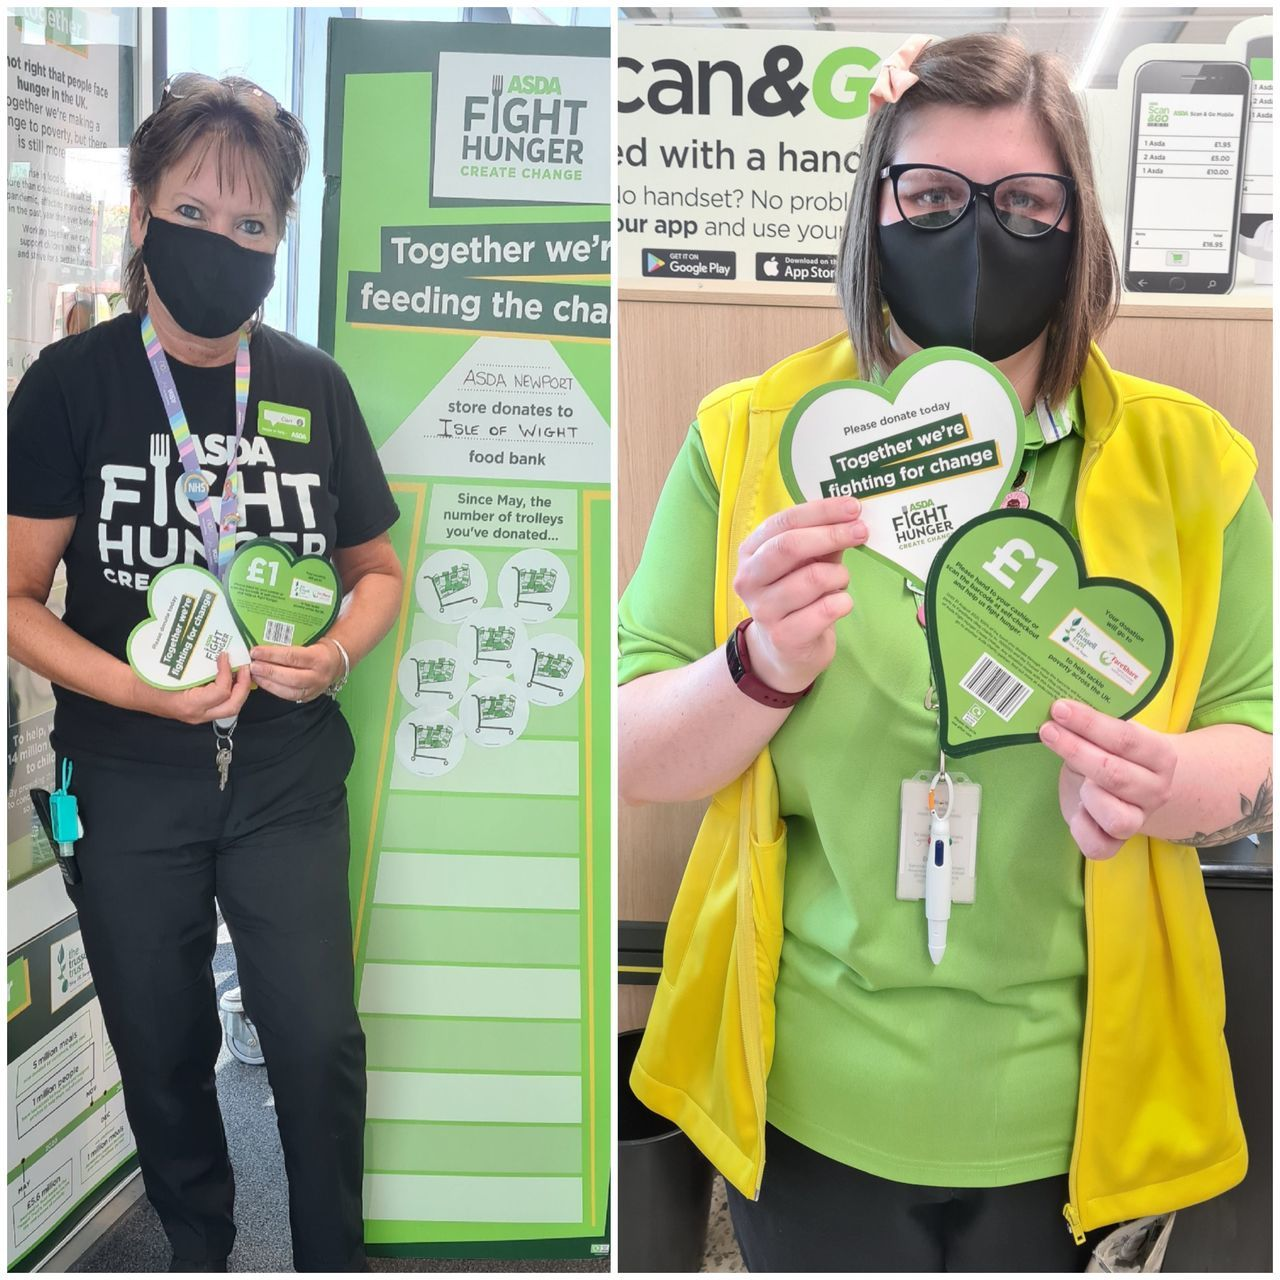 Fight Hunger support   Asda Newport Isle of Wight